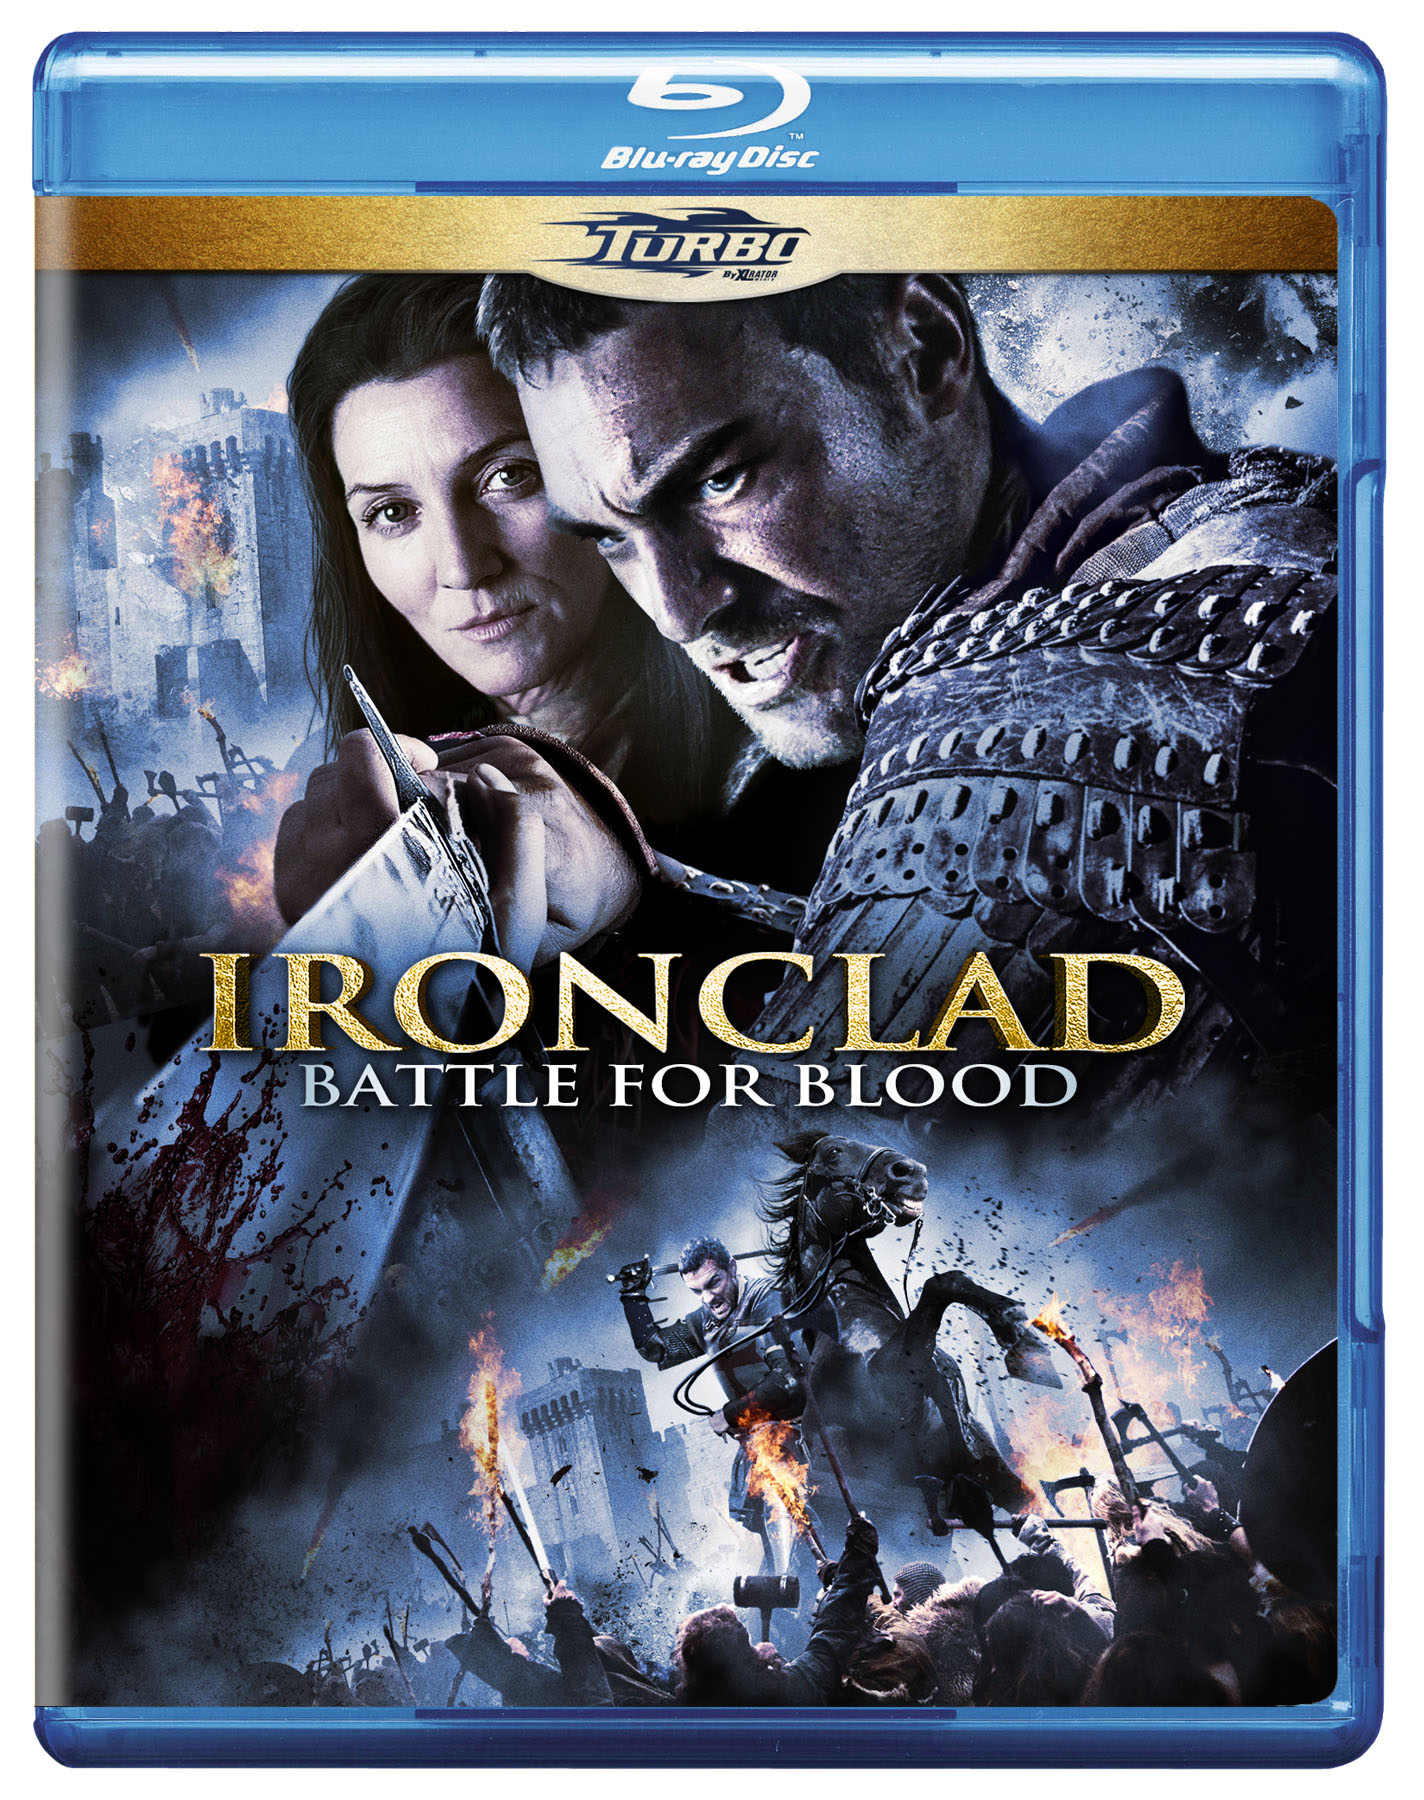 Prepare For the Ironclad: Battle for Blood with the Film's Release